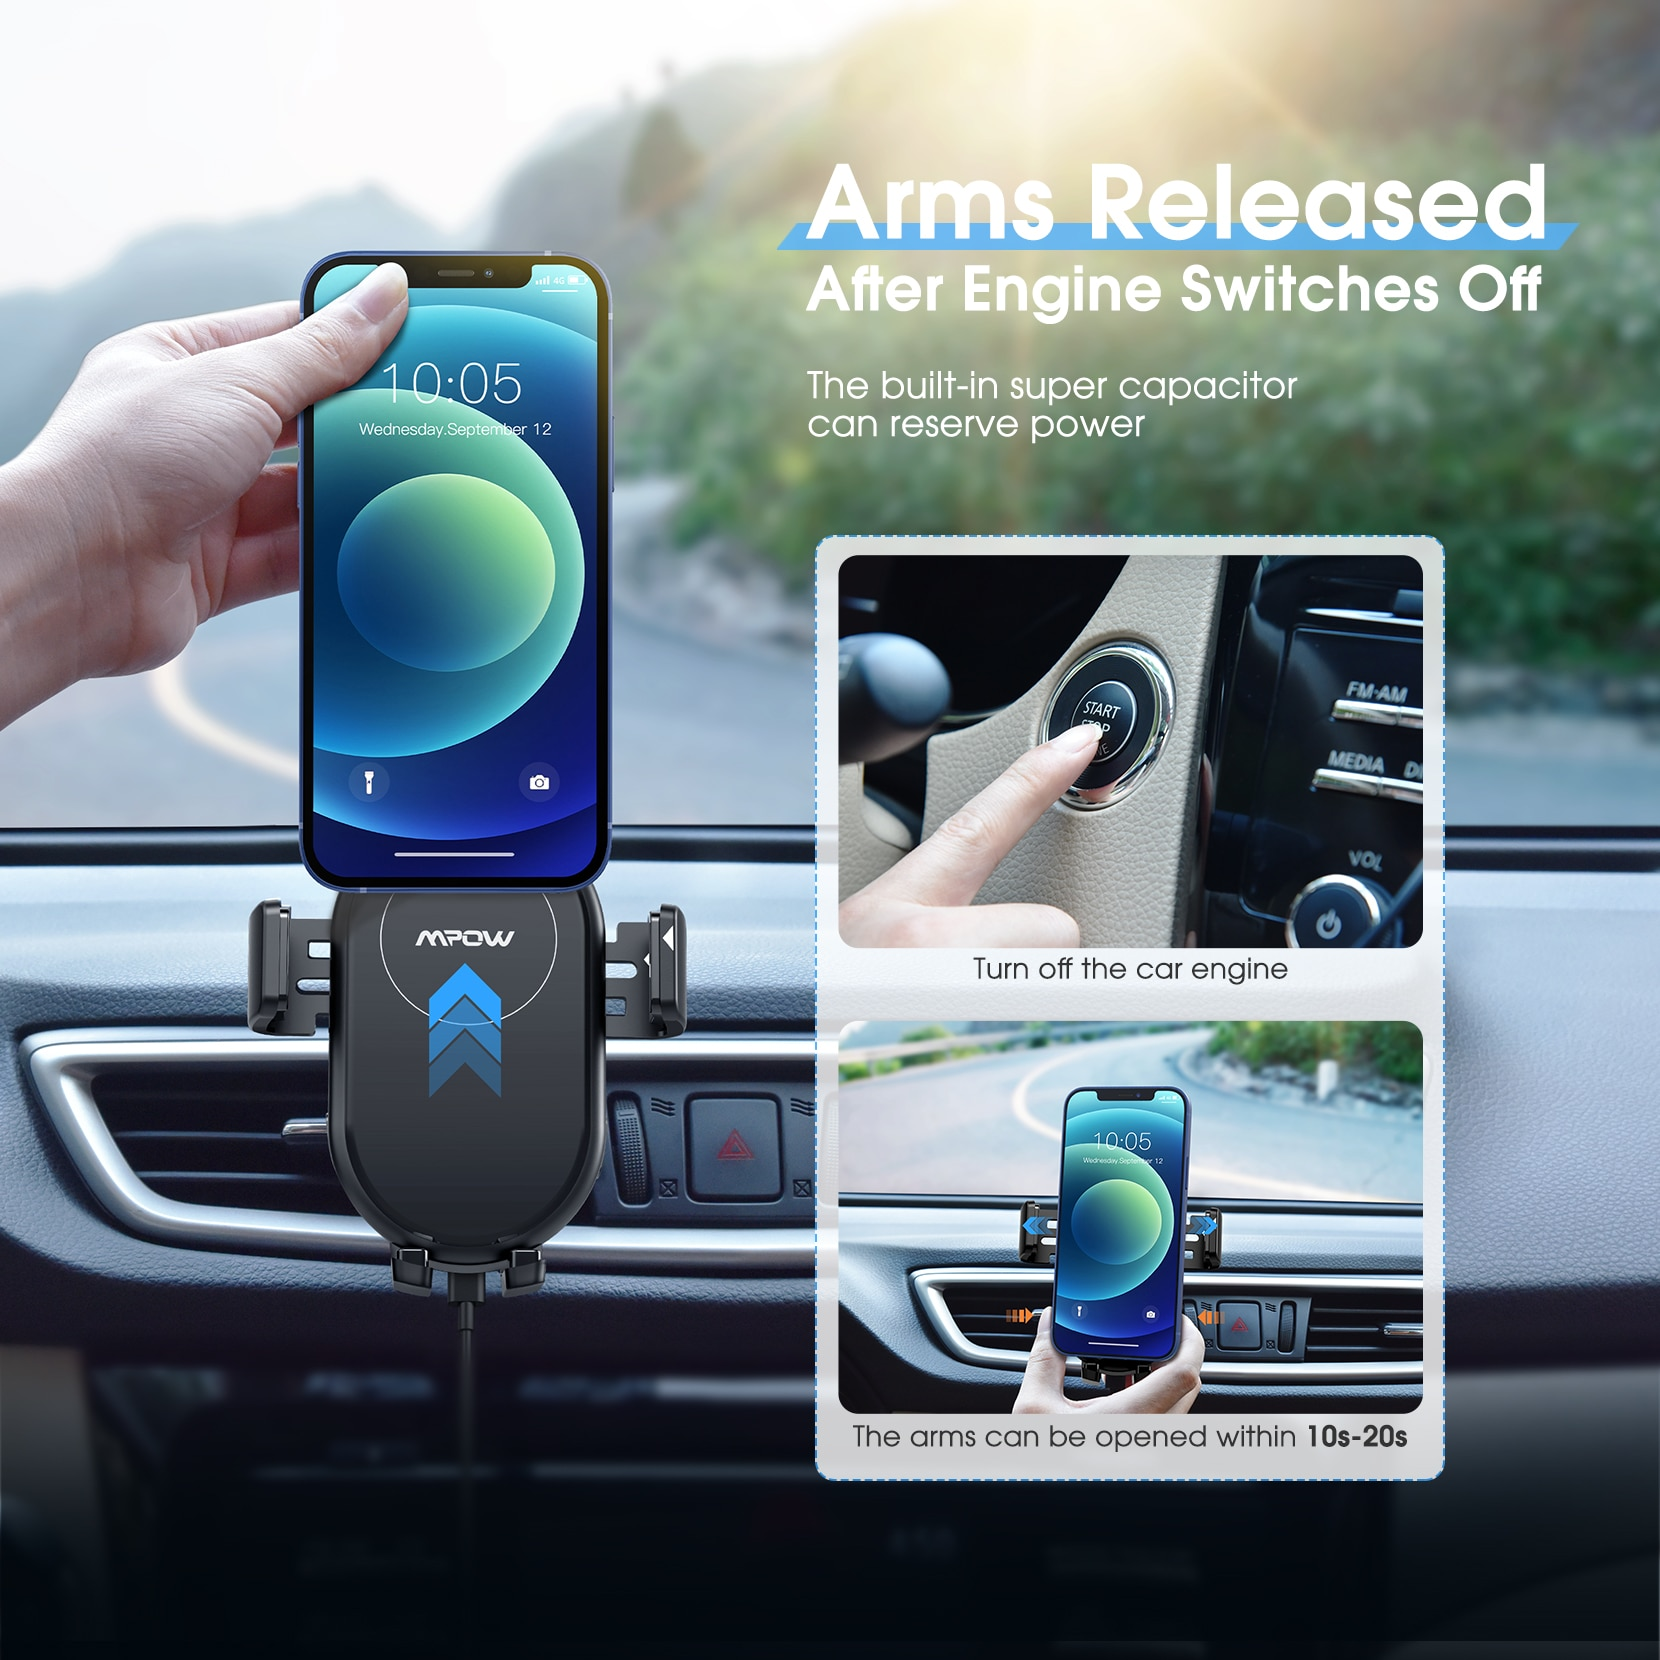 H2dd9691774964ca9b72cc03852316609n - MPOW CA164 Wireless Car Charger 10W Auto-clamping Qi Fast Charging Car Mount with Built-in Battery Cup Holder Vent Phone Holder